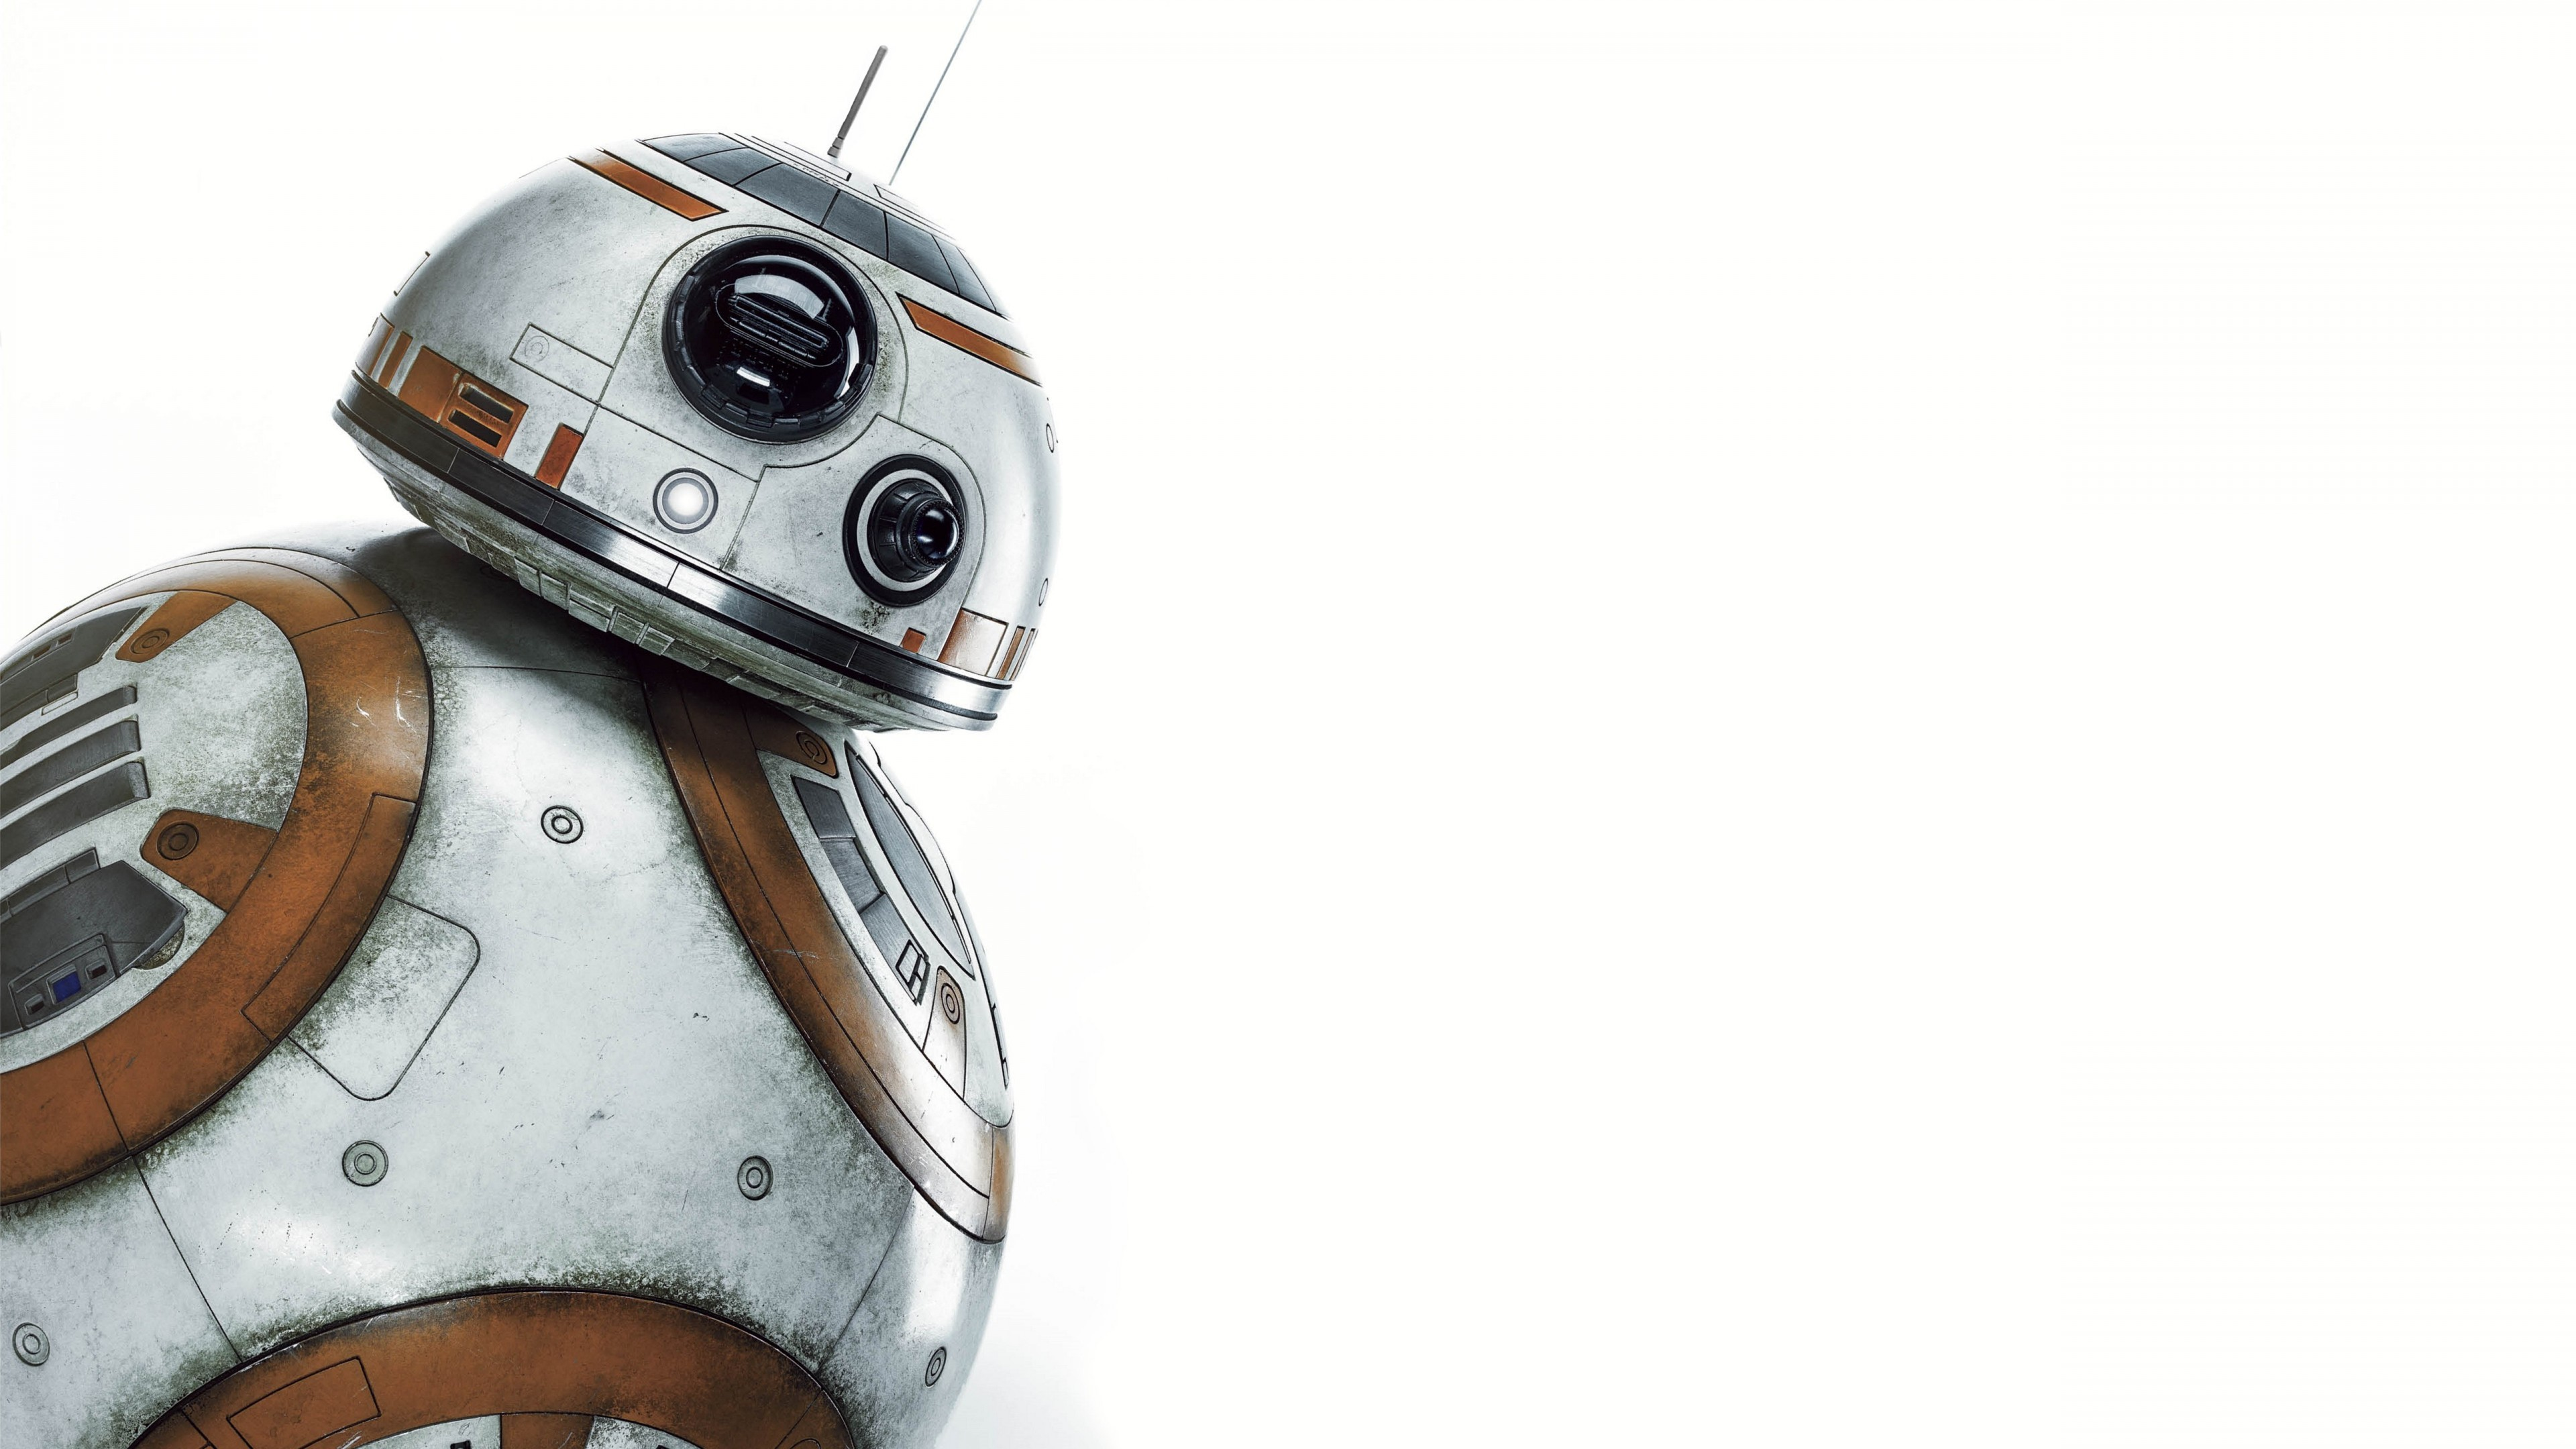 3840x2160 Tags: BB-8 Droid, Star Wars, 4K ...